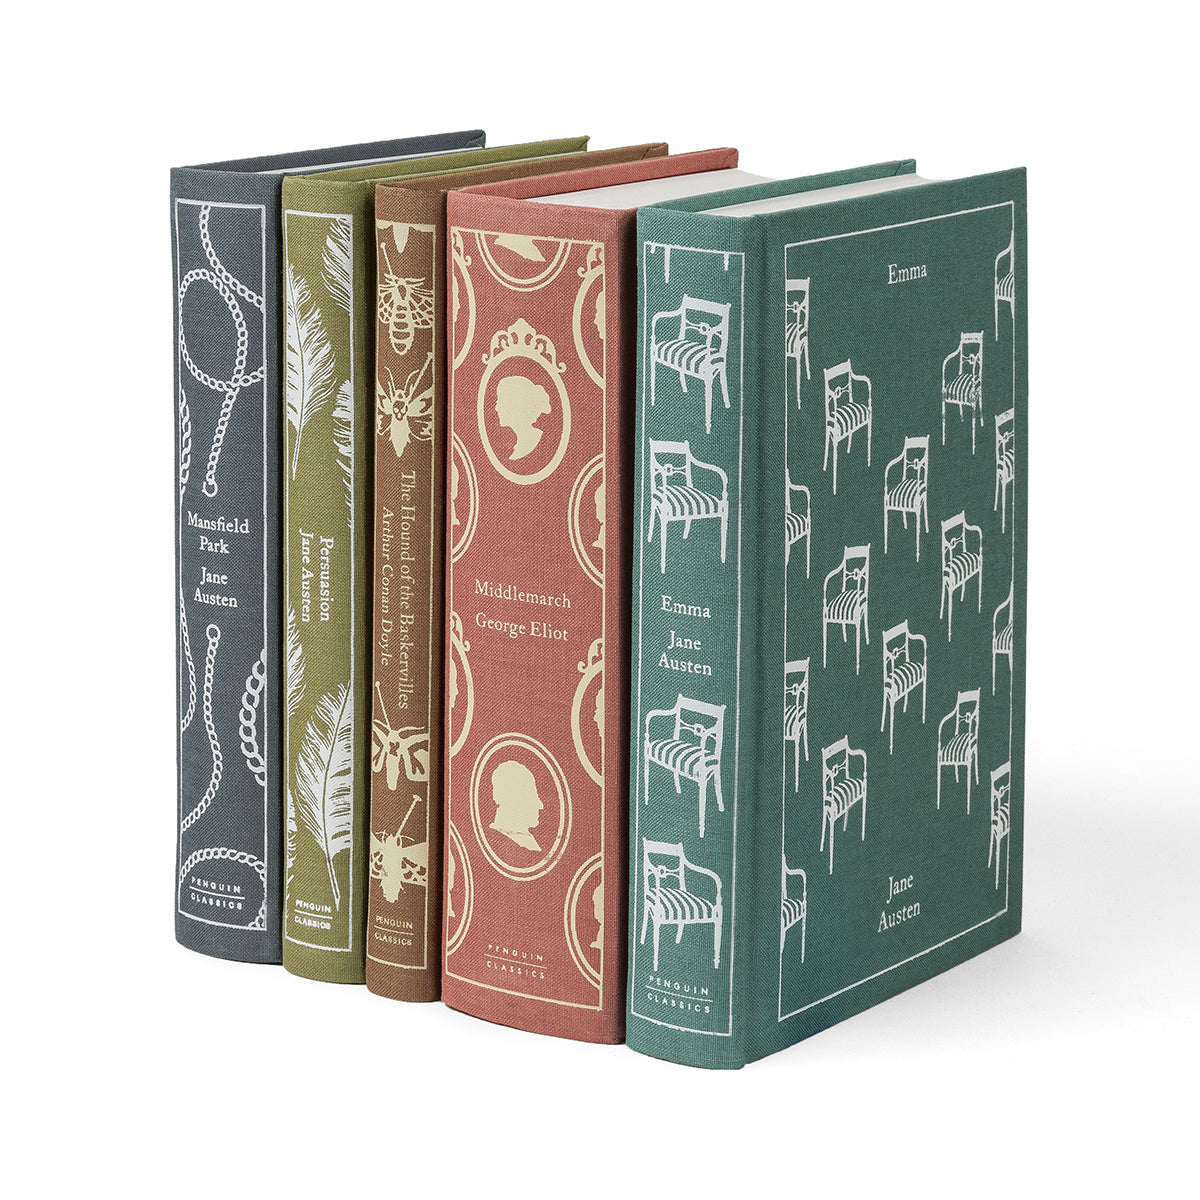 Penguin Classics Cameo Palette Book Set, set of five classic novels from Penguin Classics in soft neutral colors.